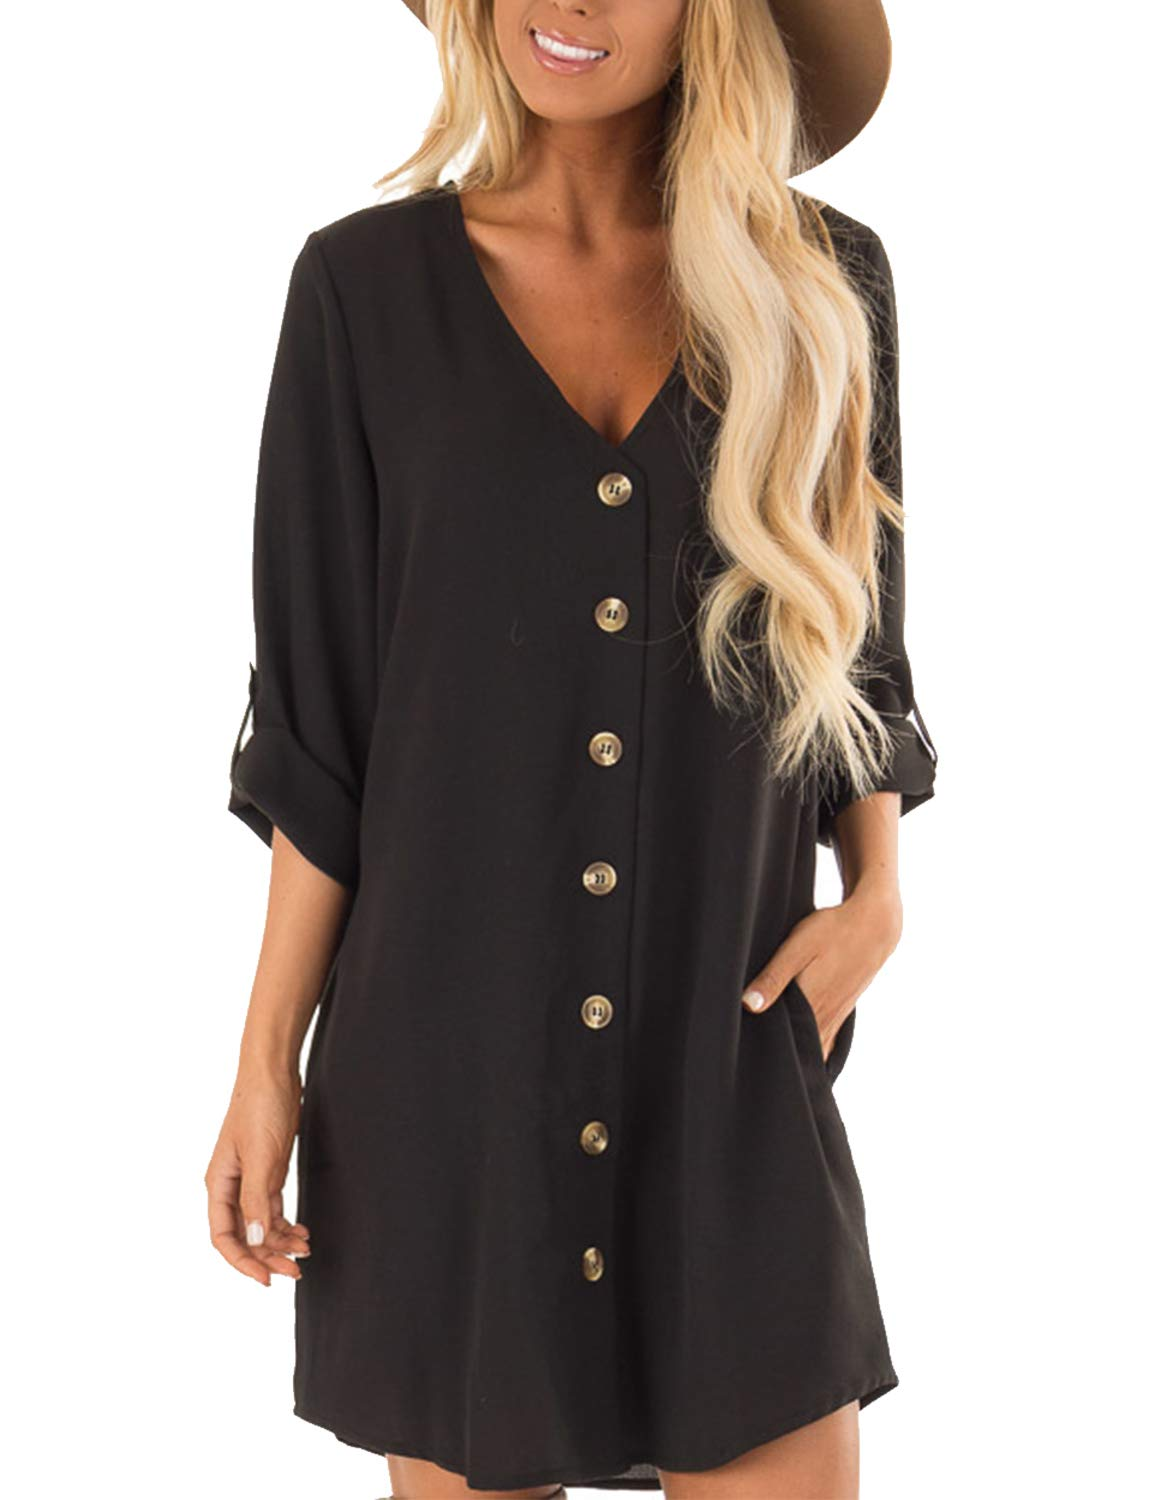 Blooming Jelly Women's Mid Sleeve V Neck Button Down Casual Mini Dress Black